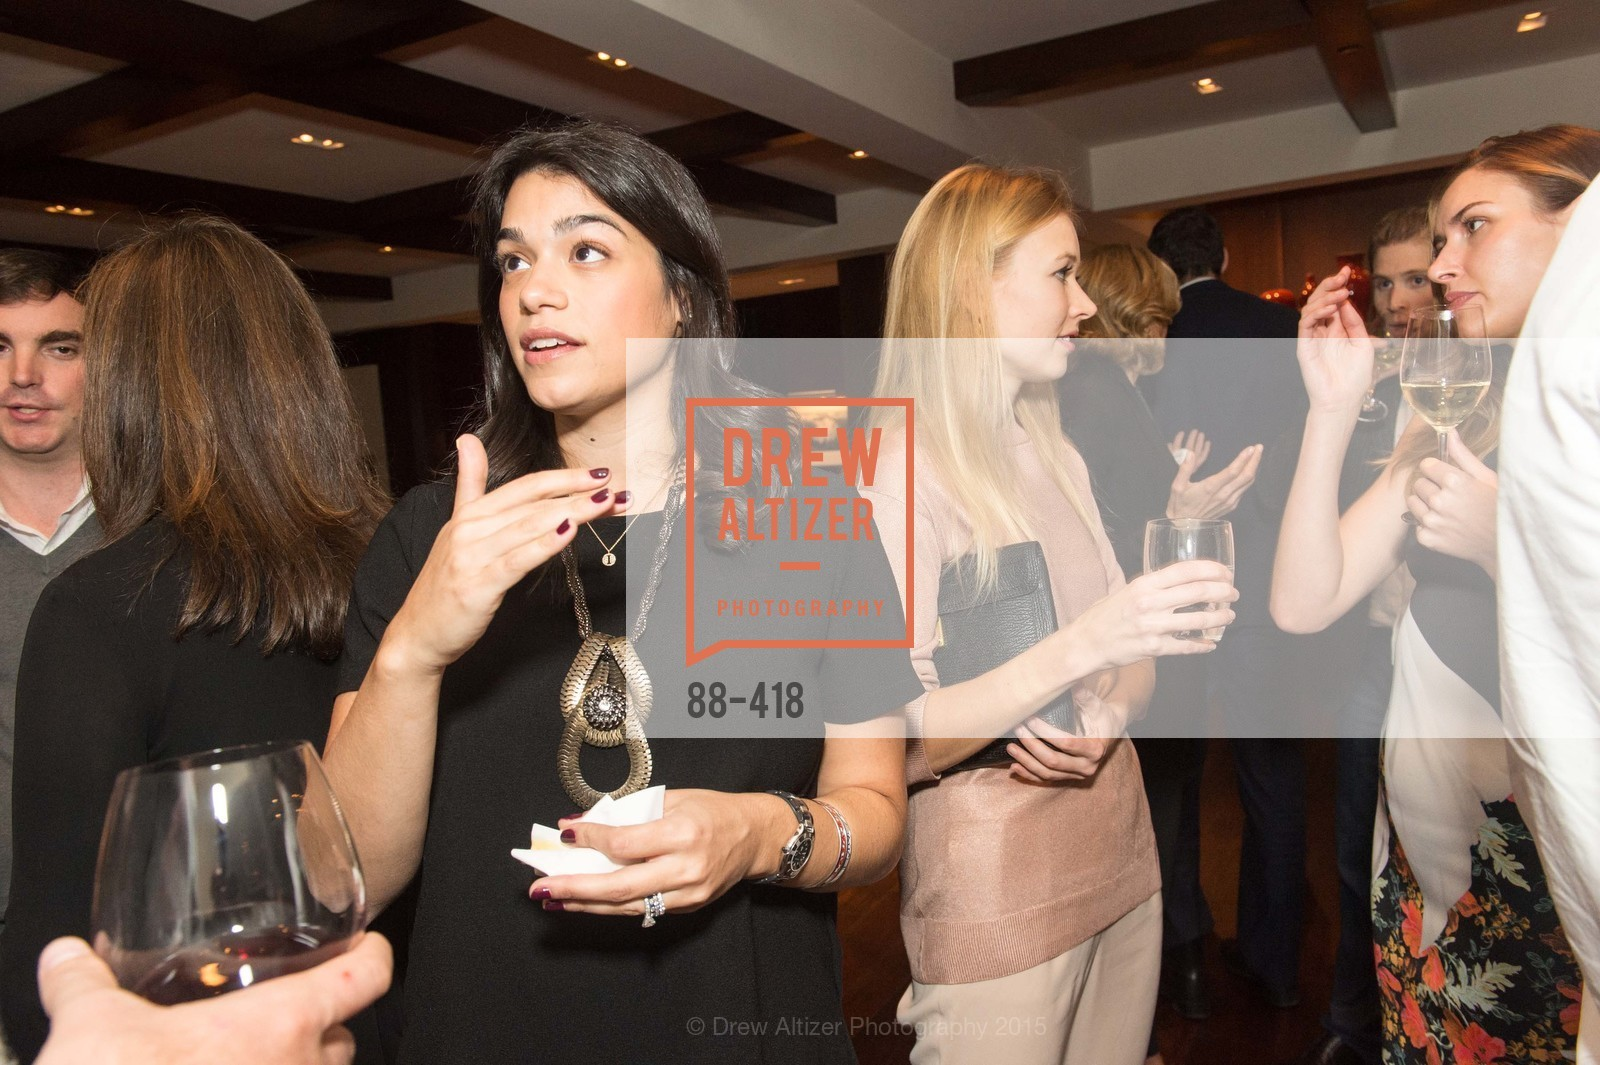 Rebecca Rathael, Elena Soboleva, Artsy and Sotheby's Village Pub Dinner, Village Pub, October 27th, 2015,Drew Altizer, Drew Altizer Photography, full-service agency, private events, San Francisco photographer, photographer california